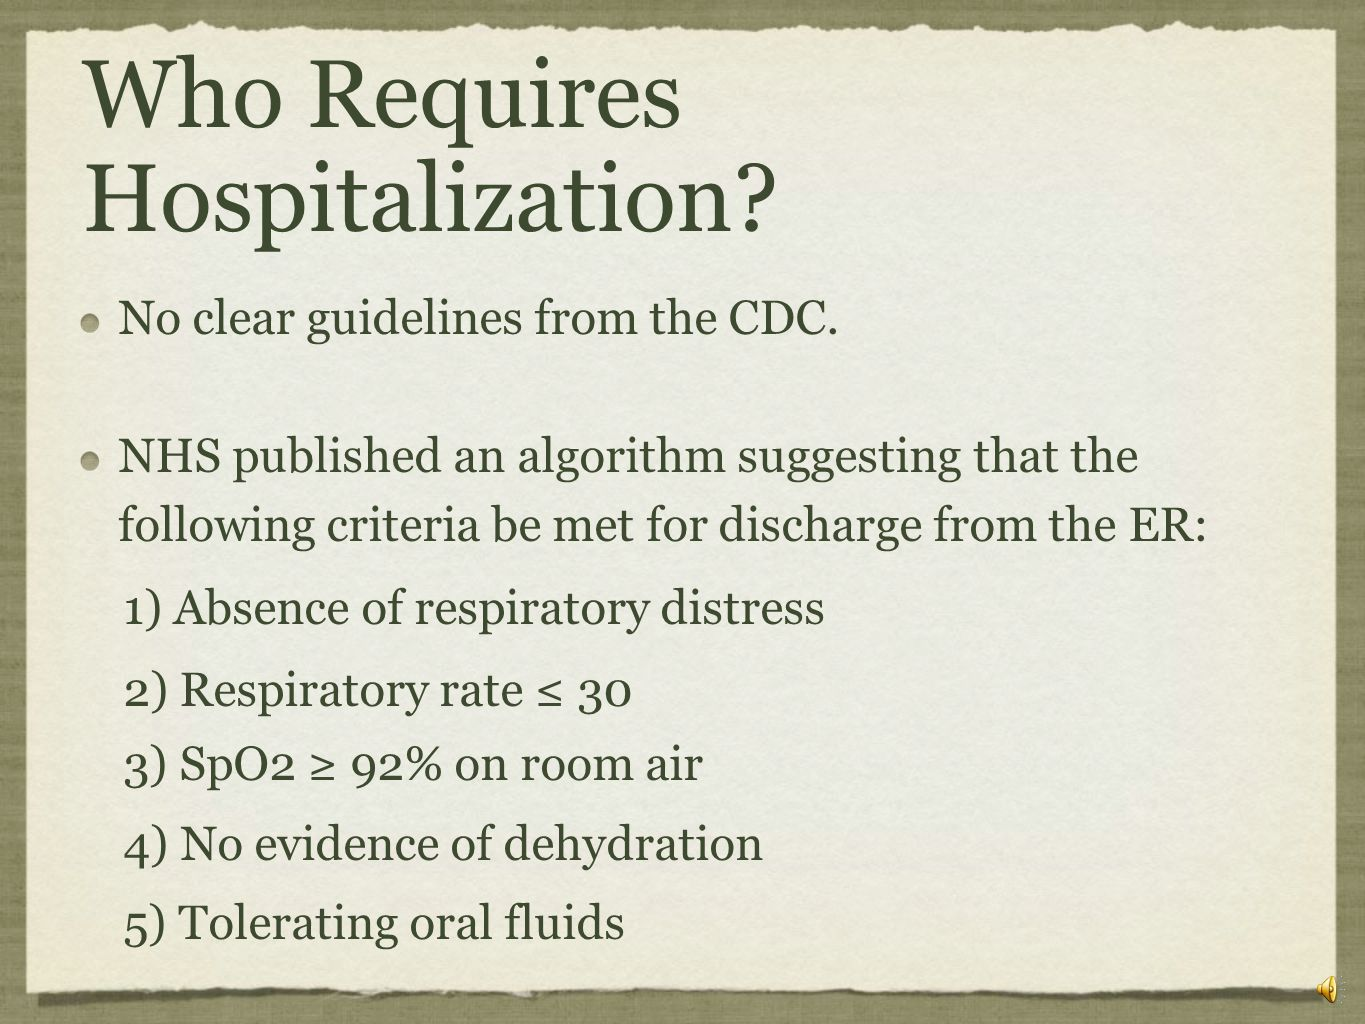 Who Requires Hospitalization